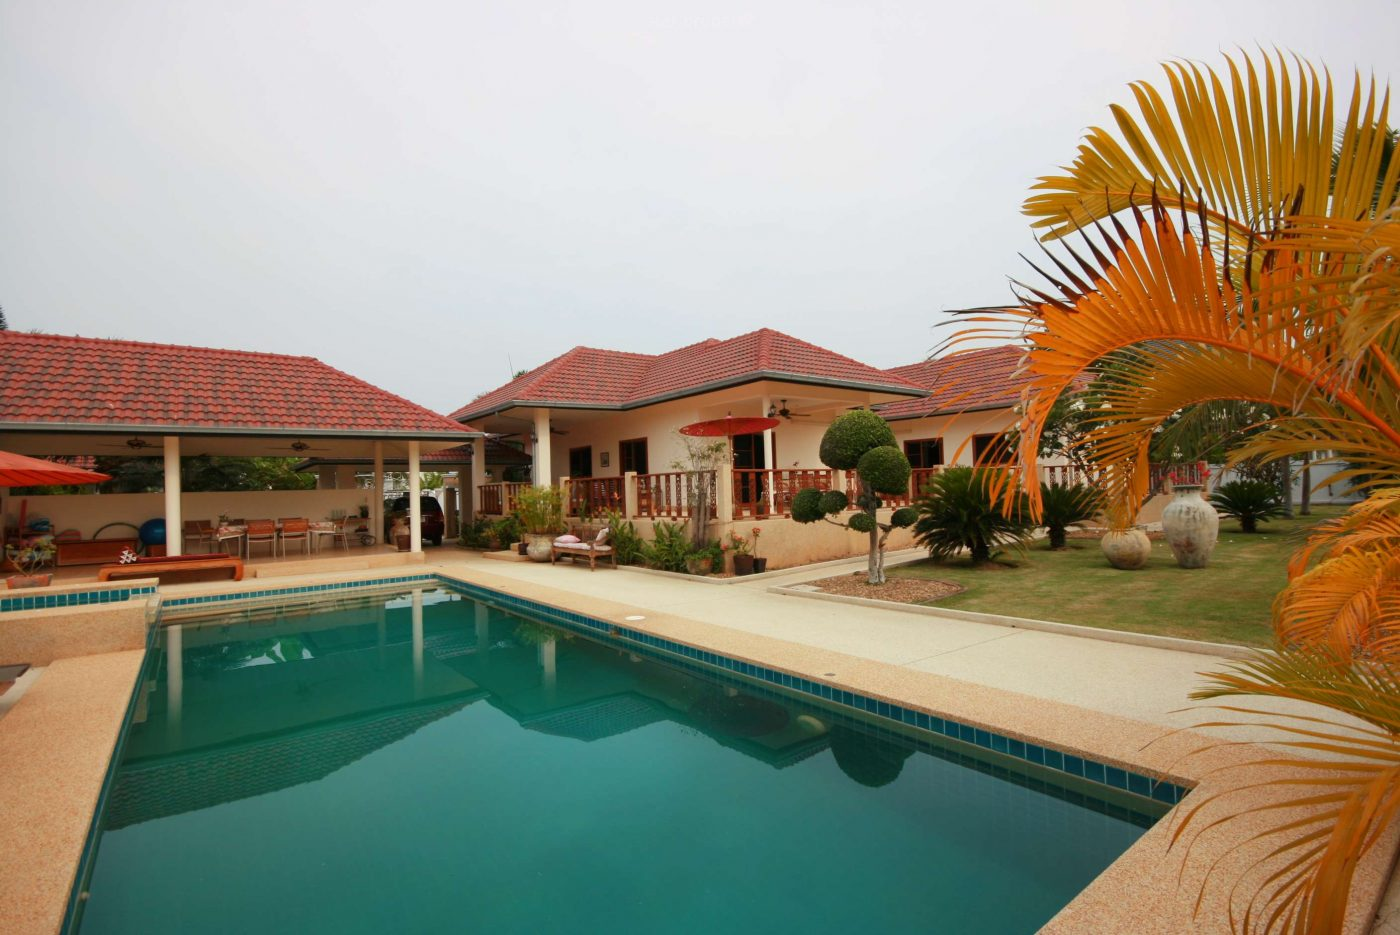 Luxury Pool Villa With Large Plot Of Land for sale at Hua Hin District, Prachuap Khiri Khan, Thailand